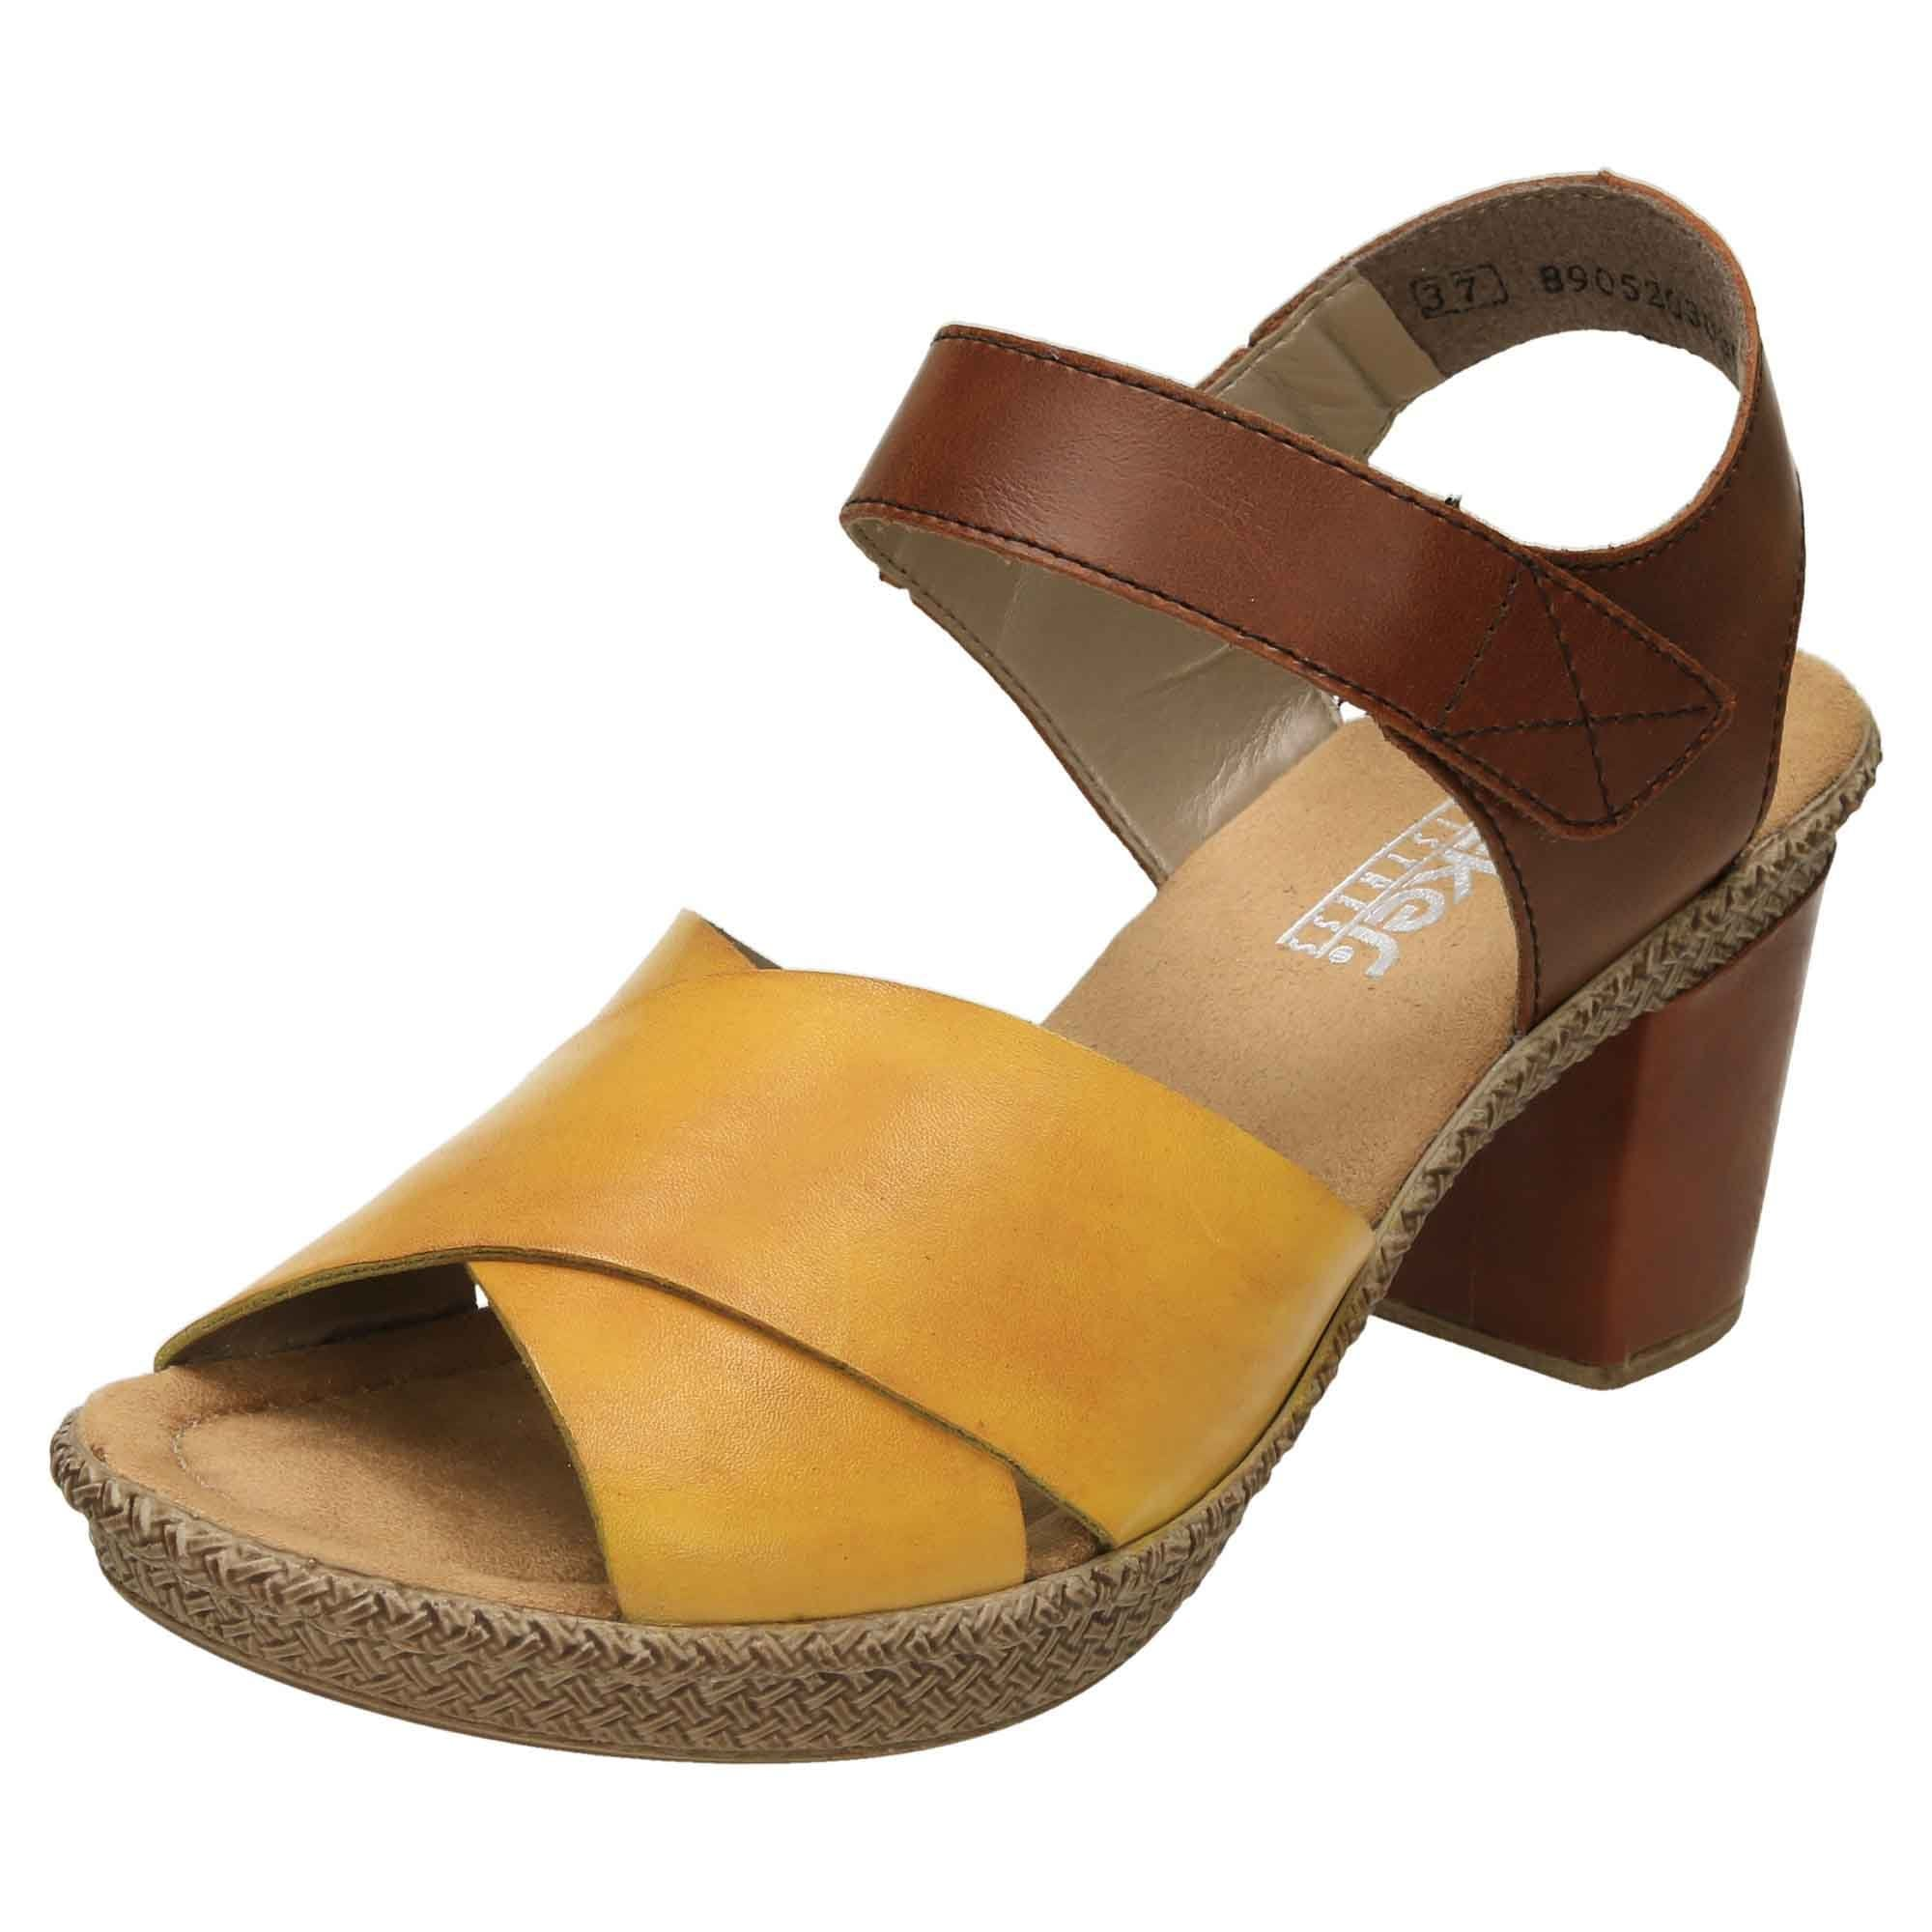 Rieker Leather Crossover Heeled Sandals 665H1 68